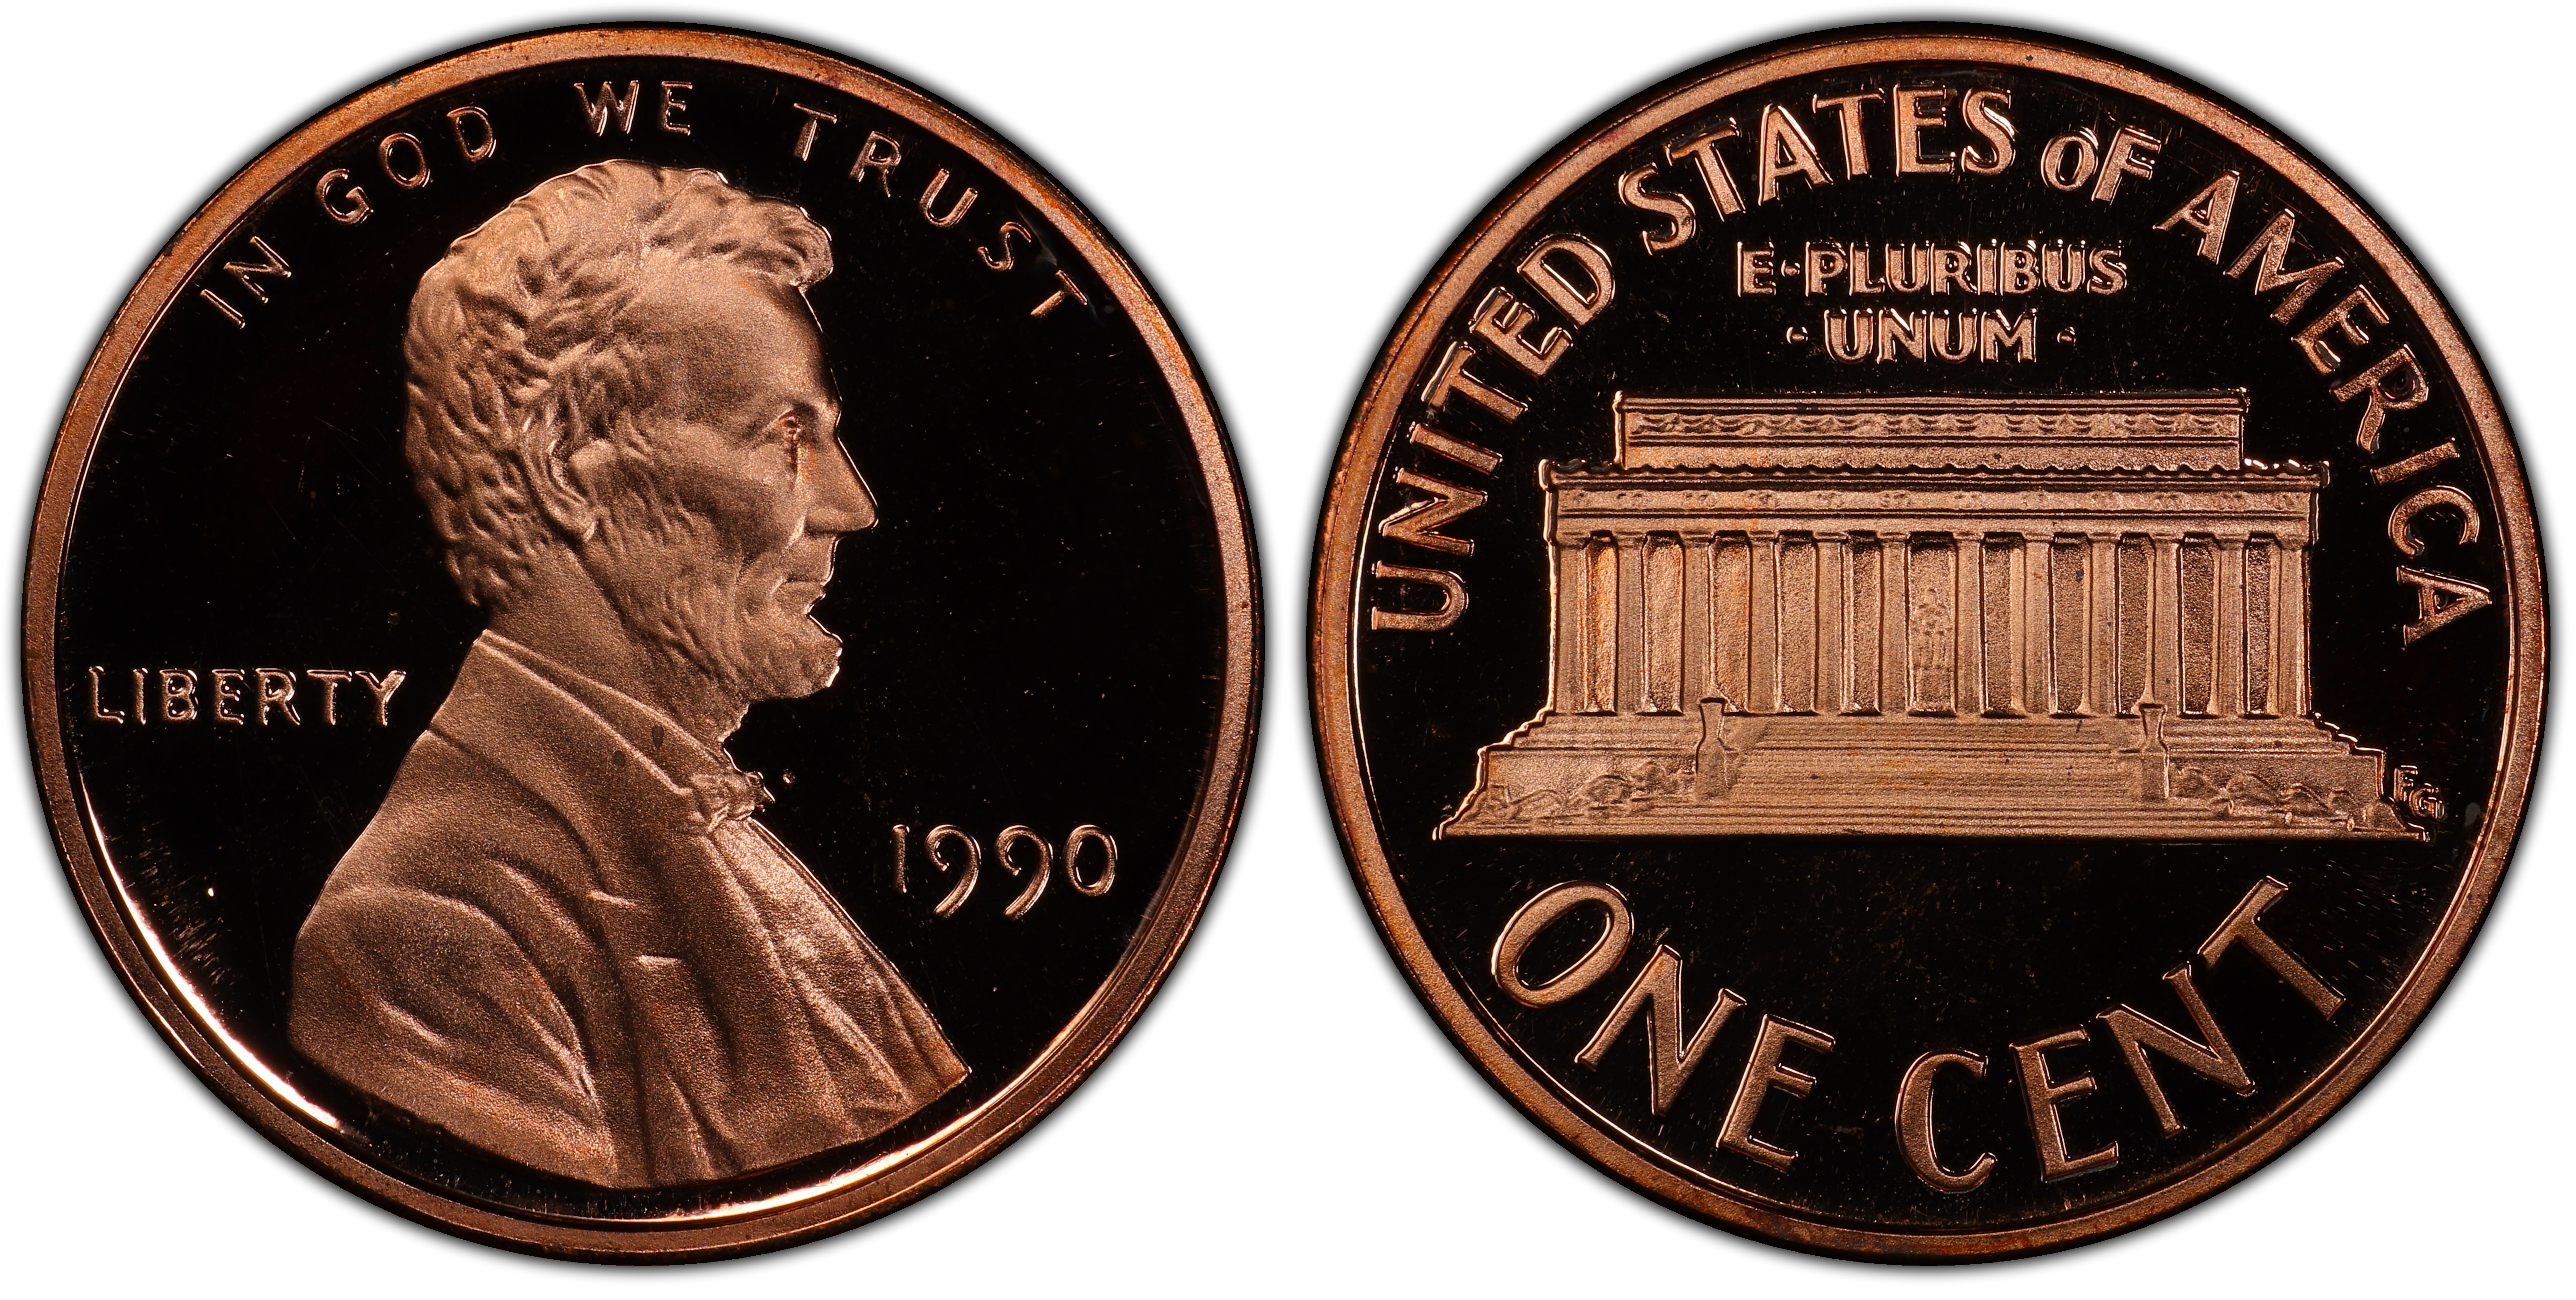 1990 proof no s one cent penny — Collectors Universe